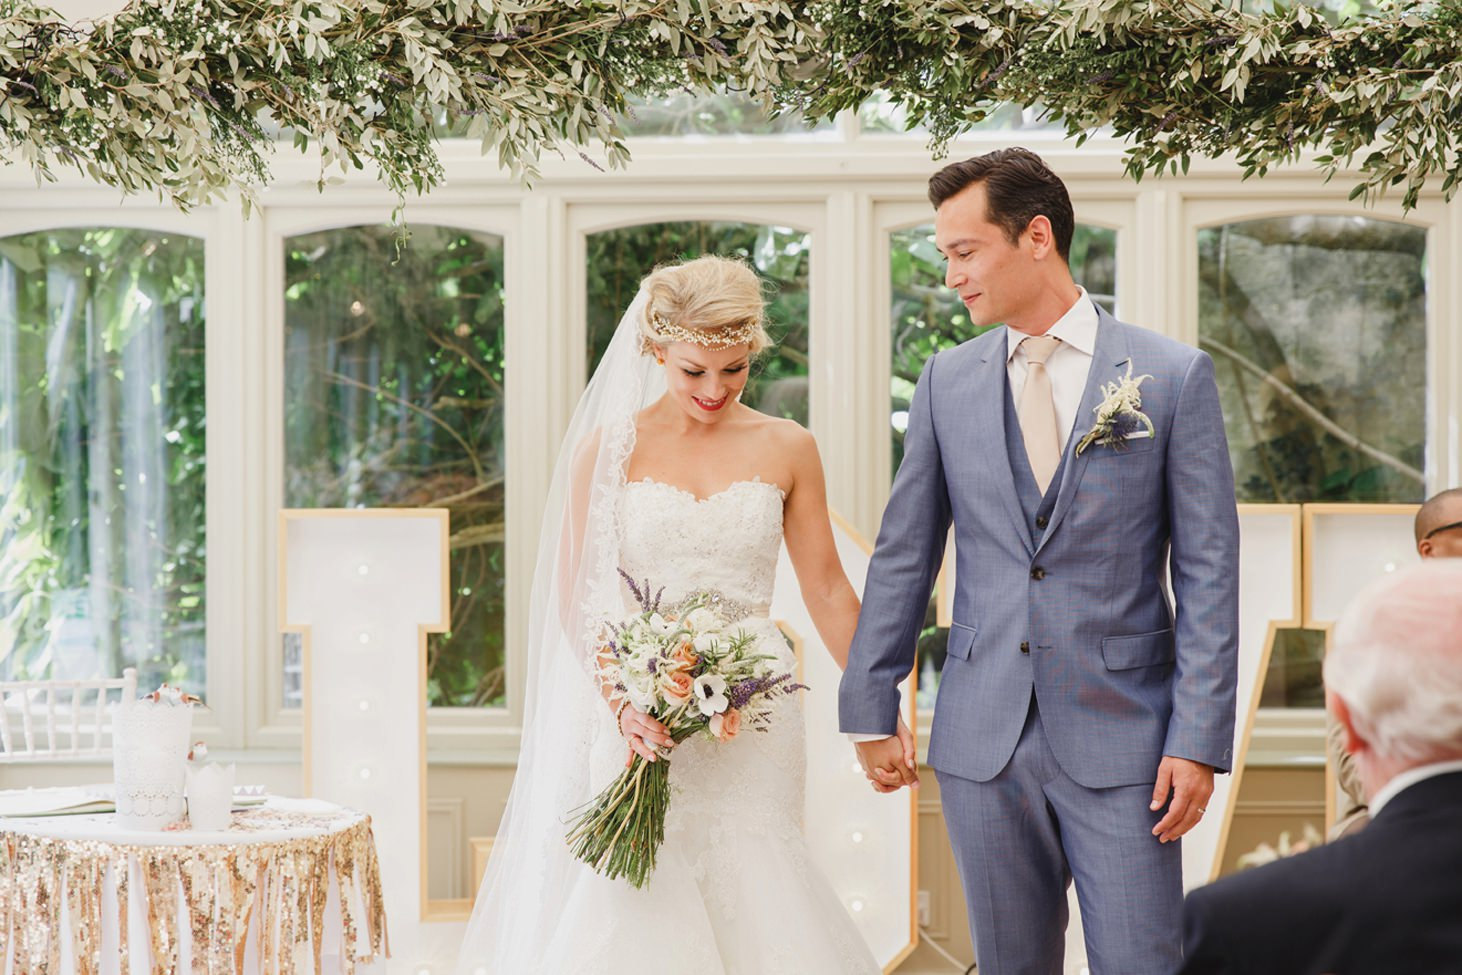 The Rectory Hotel Crudwell bride and groom just married